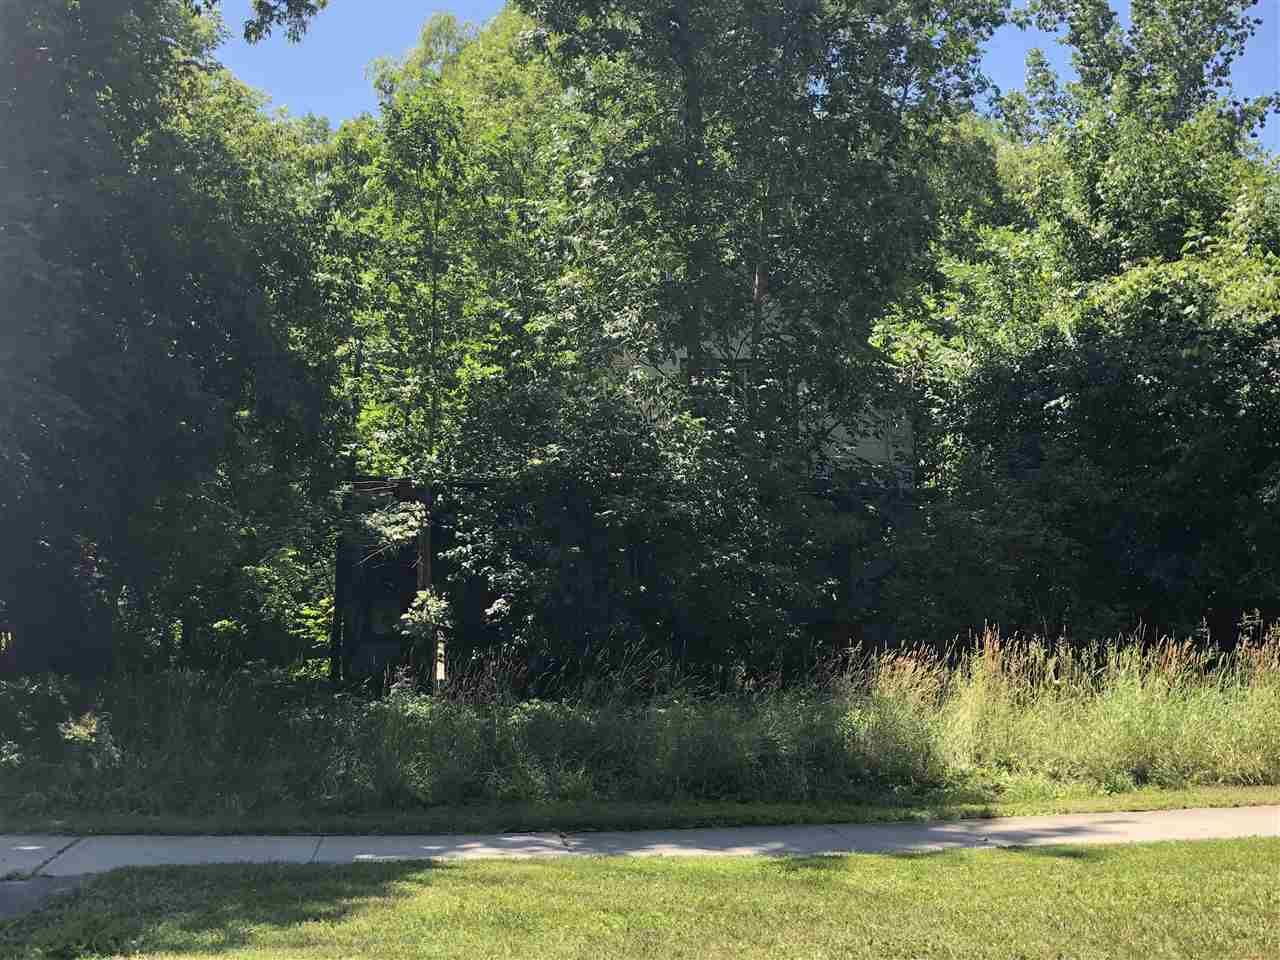 3.5 Acres in Shelburne Village, potential for subdivision. Rear of lot abuts Tracey Lane.